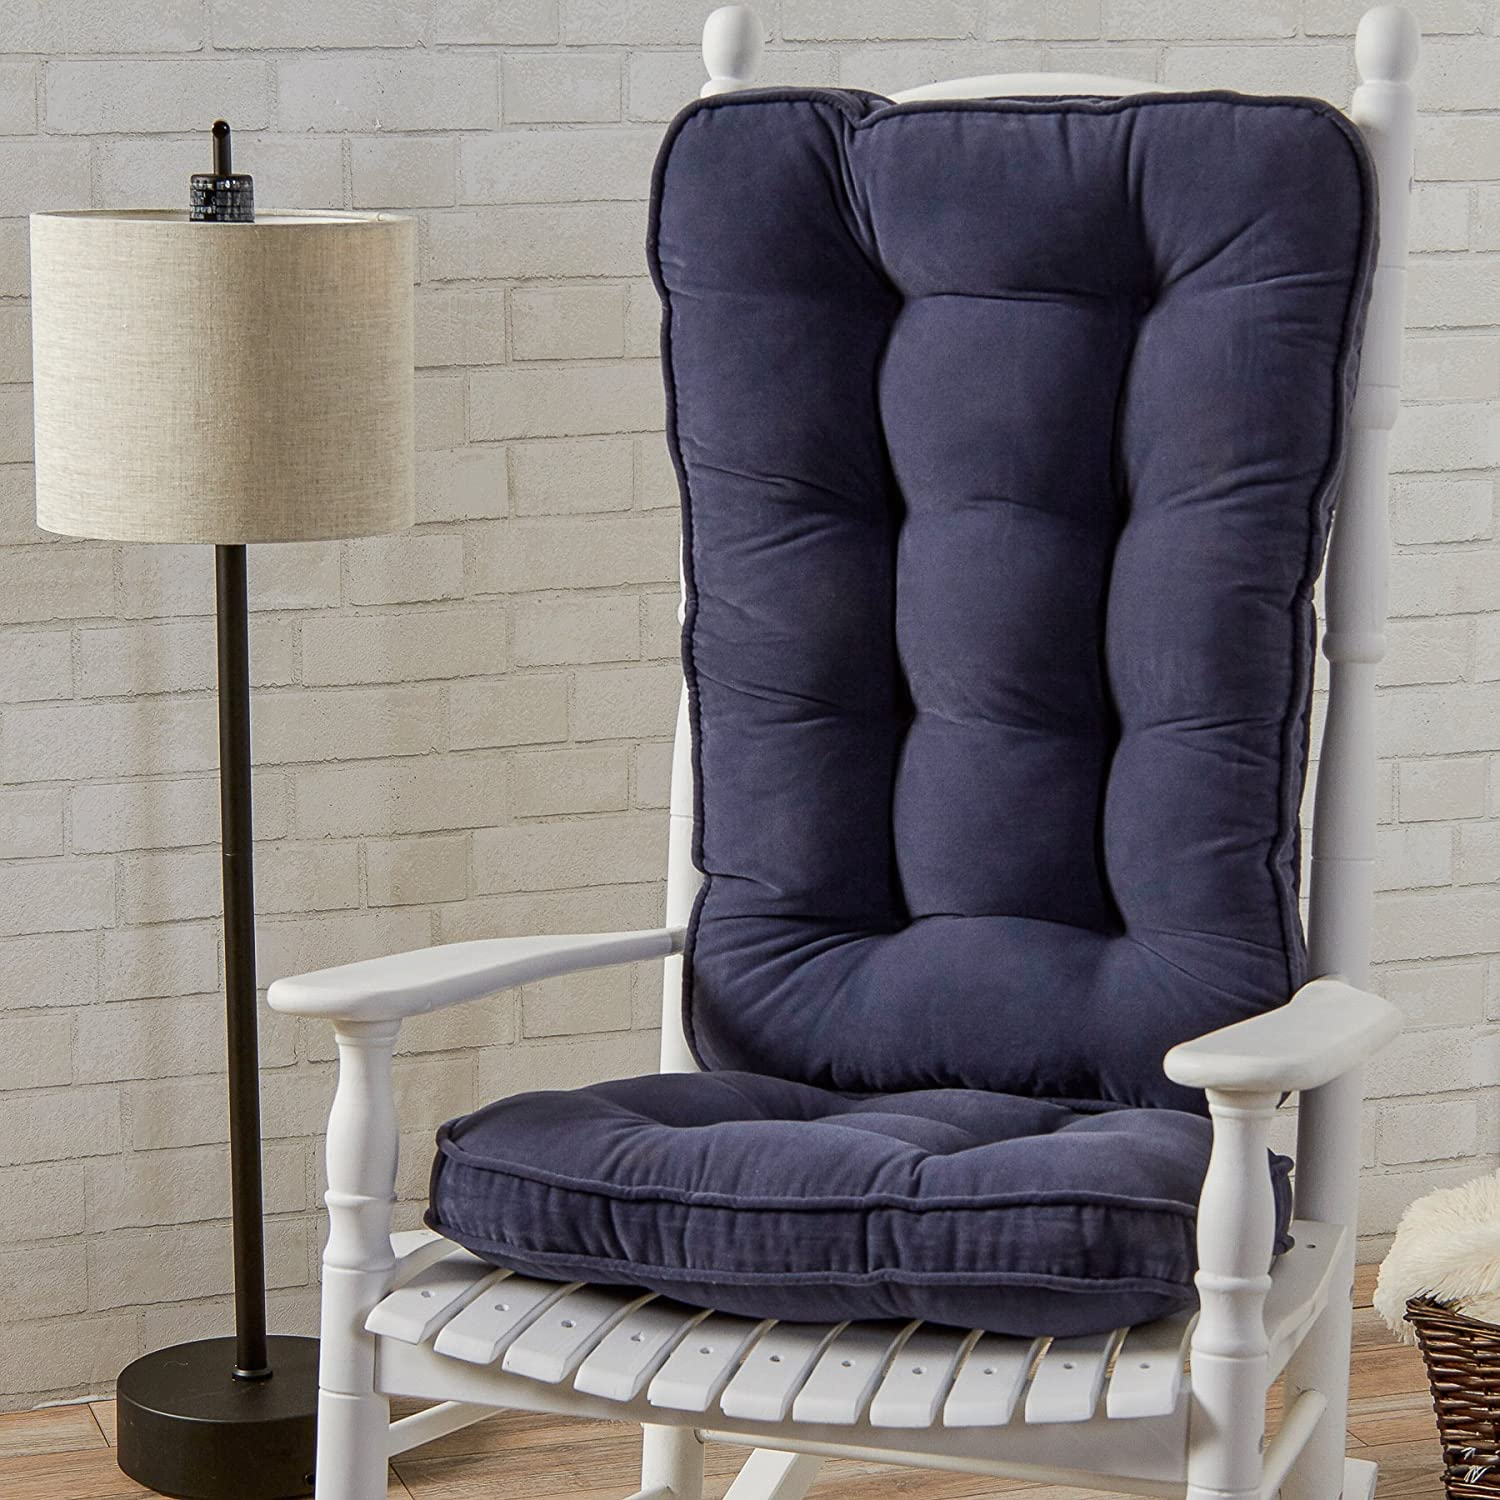 Amazon.com: Greendale Home Fashions Jumbo Rocking Chair Cushion Set Hyatt  Fabric, Denim: Home U0026 Kitchen